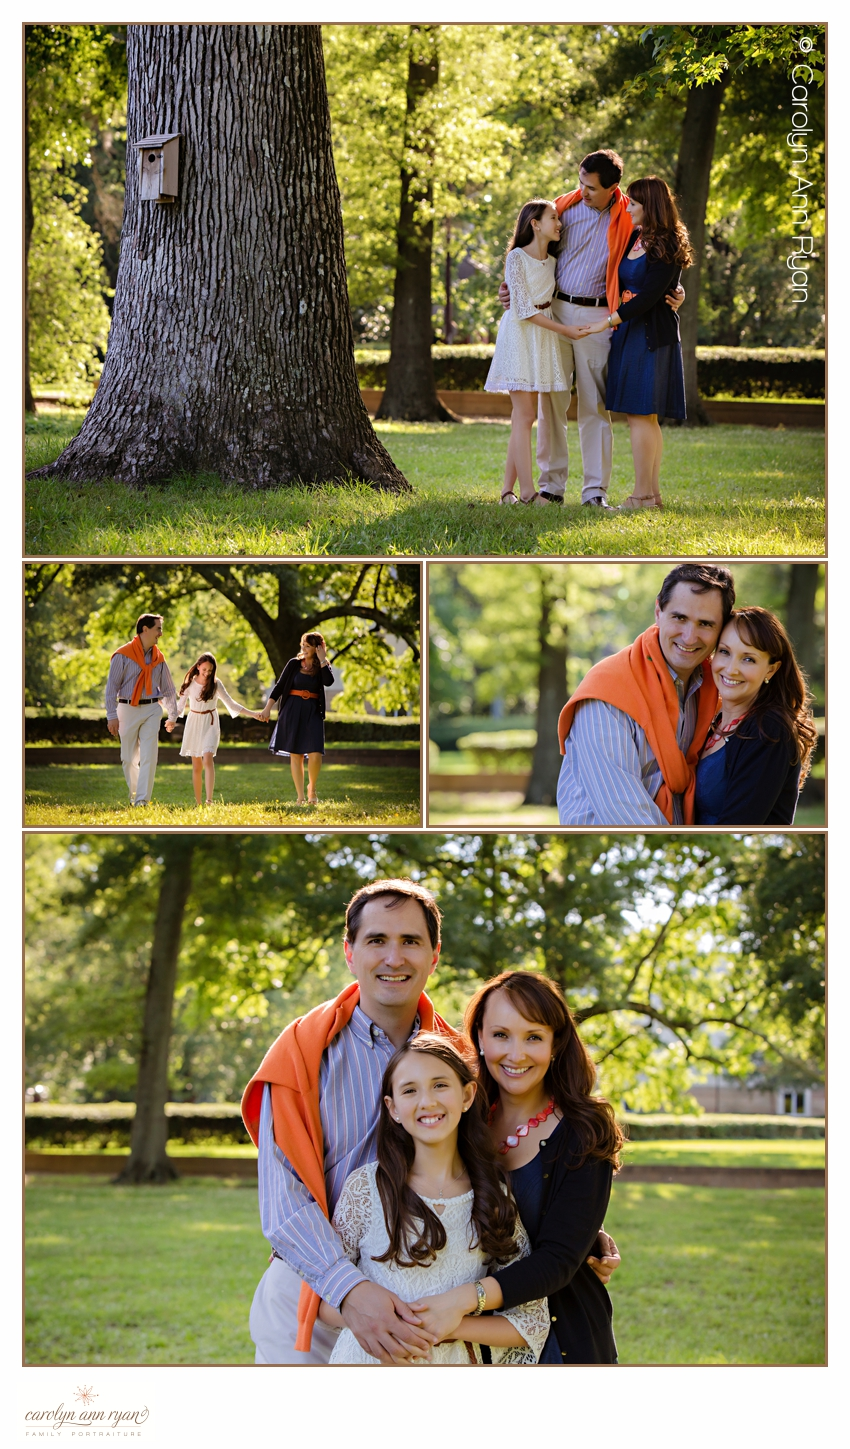 Enchanting South Charlotte Family Photography by Carolyn Ann Ryan